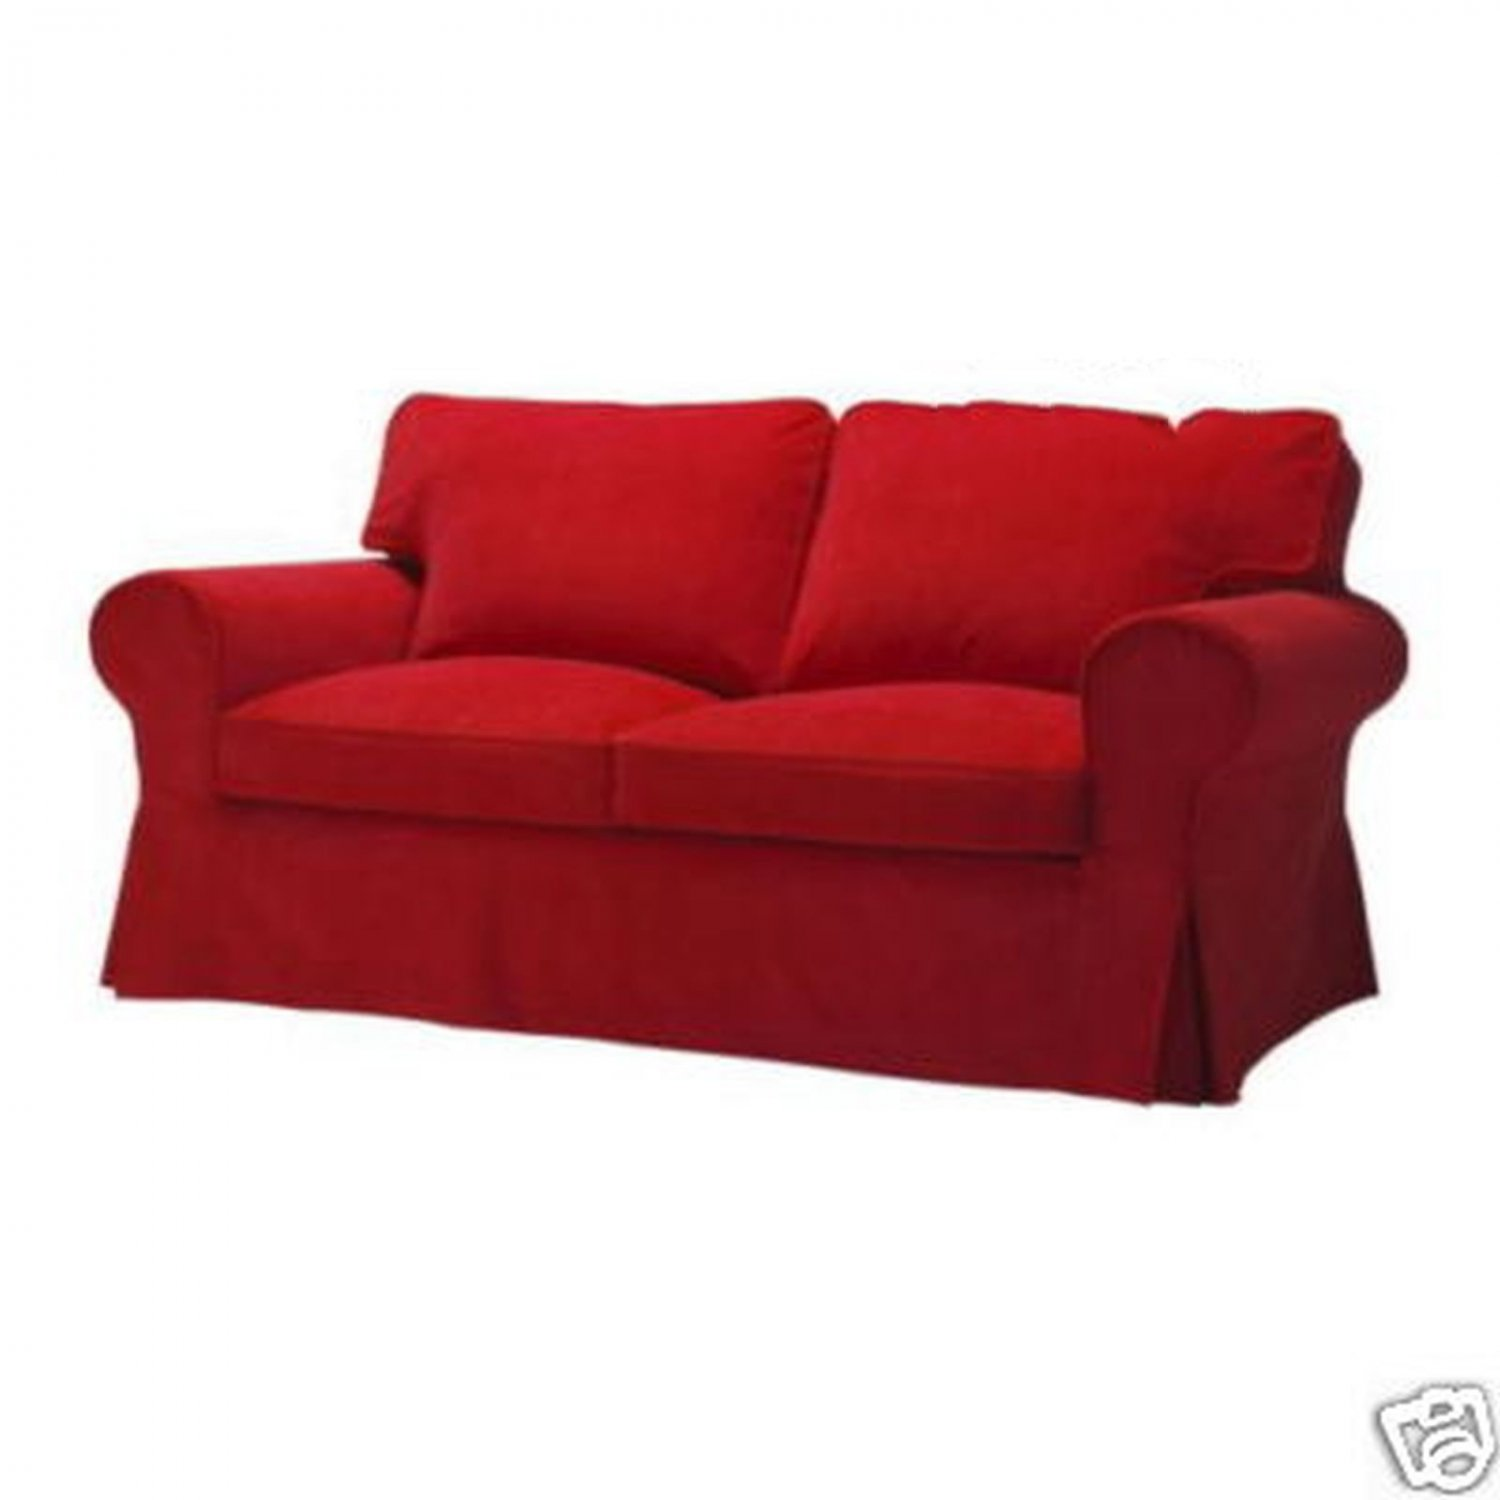 Ikea ektorp 2 seat loveseat sofa slipcover cover leaby red corduroy xmas limited edition last one Cover for loveseat